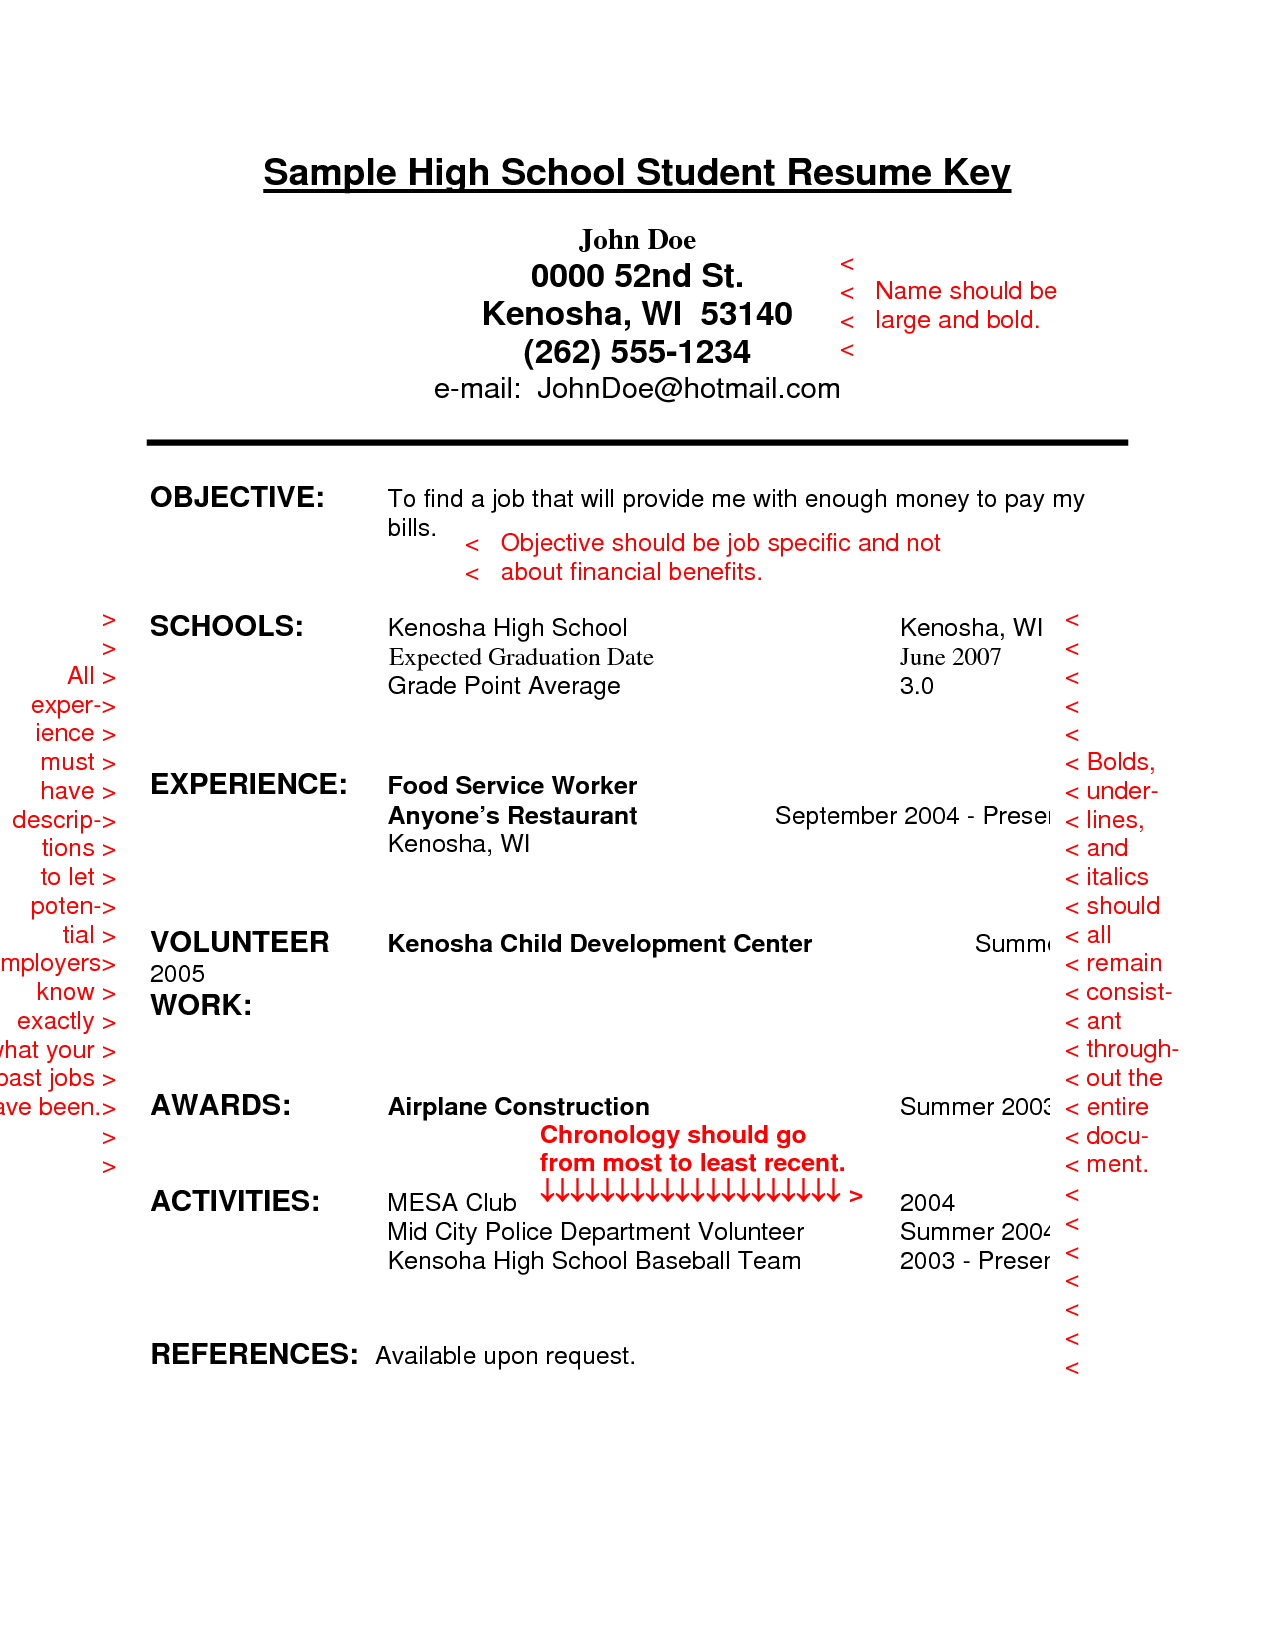 008 Essay Example High School Unforgettable Experience Junior Year My Examples Senior Full